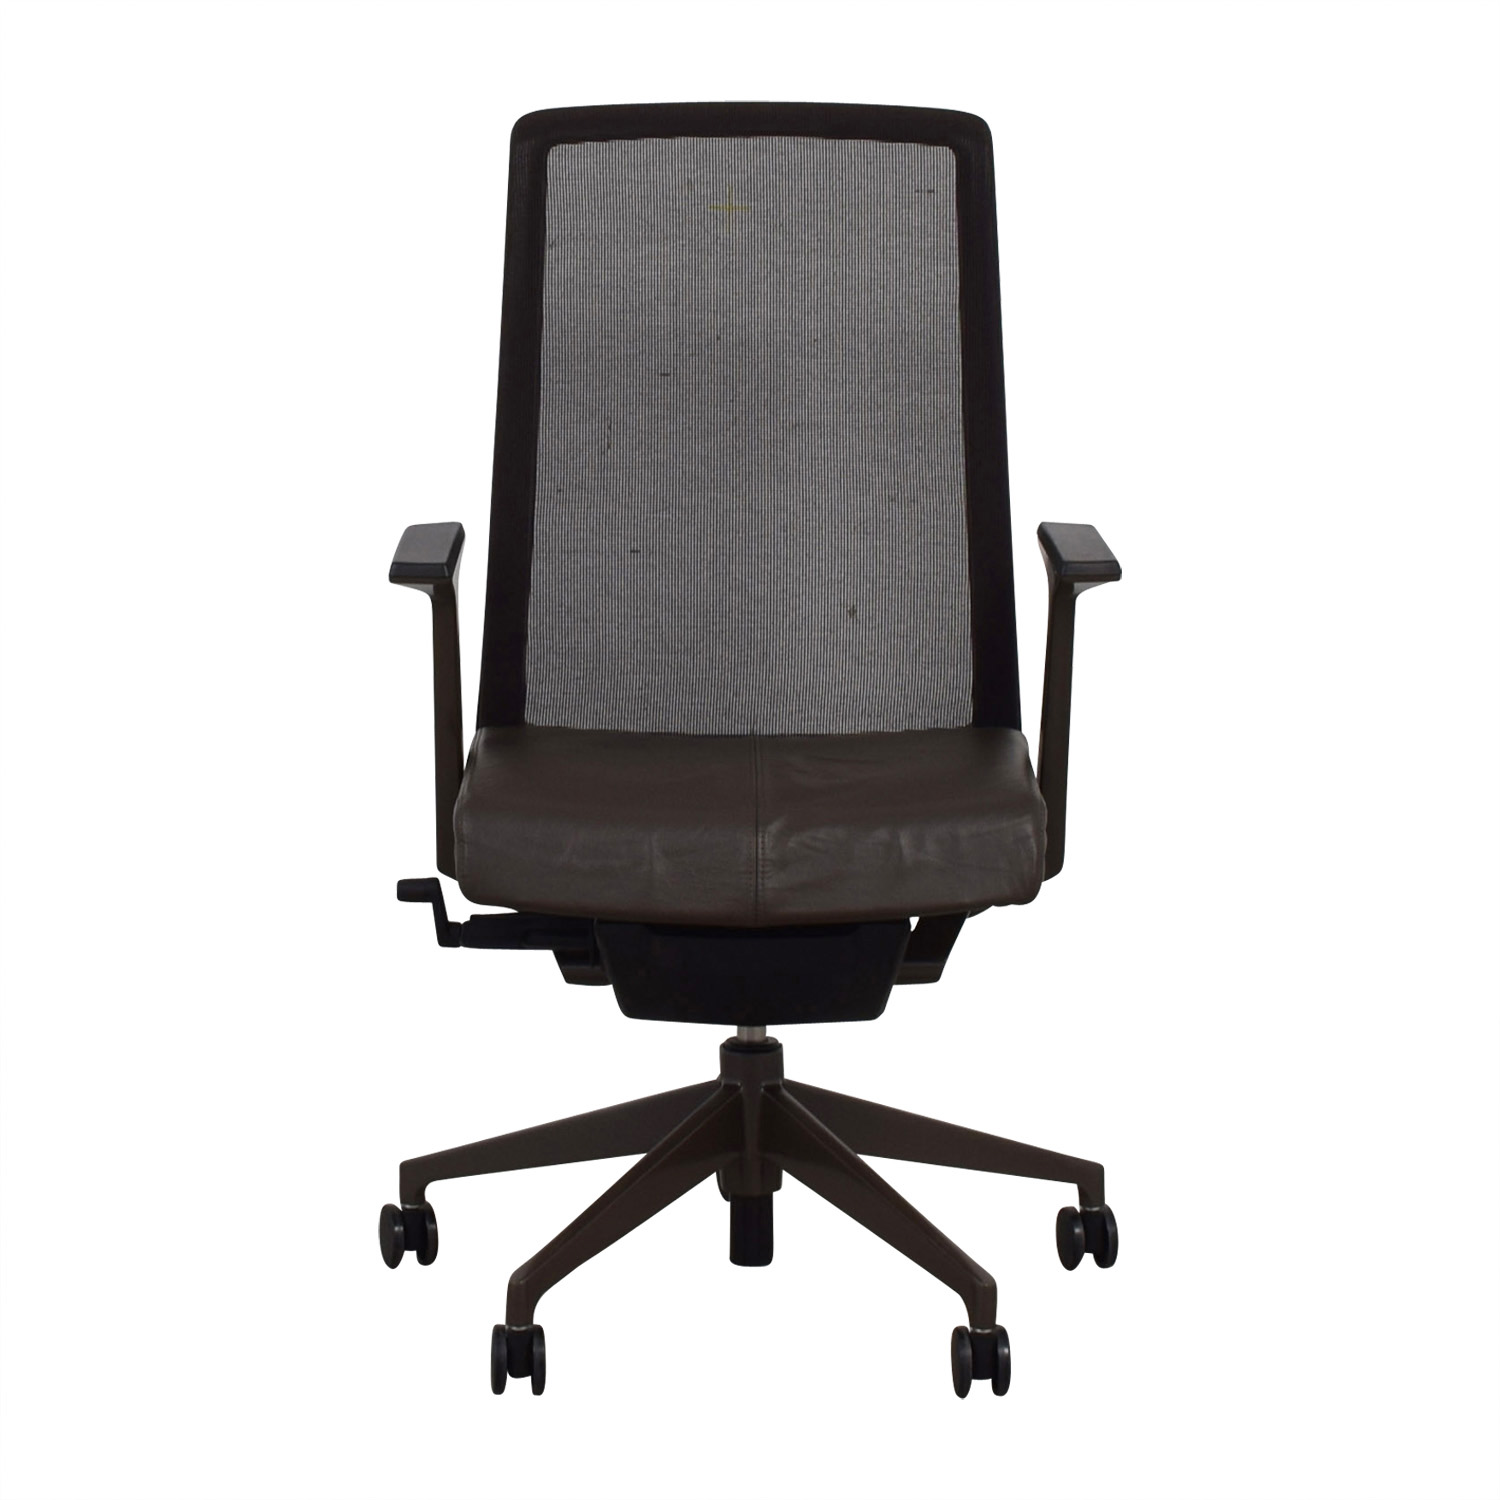 buy Crate & Barrel Black and Brown Haworth Very Task Chair Crate & Barrel Home Office Chairs